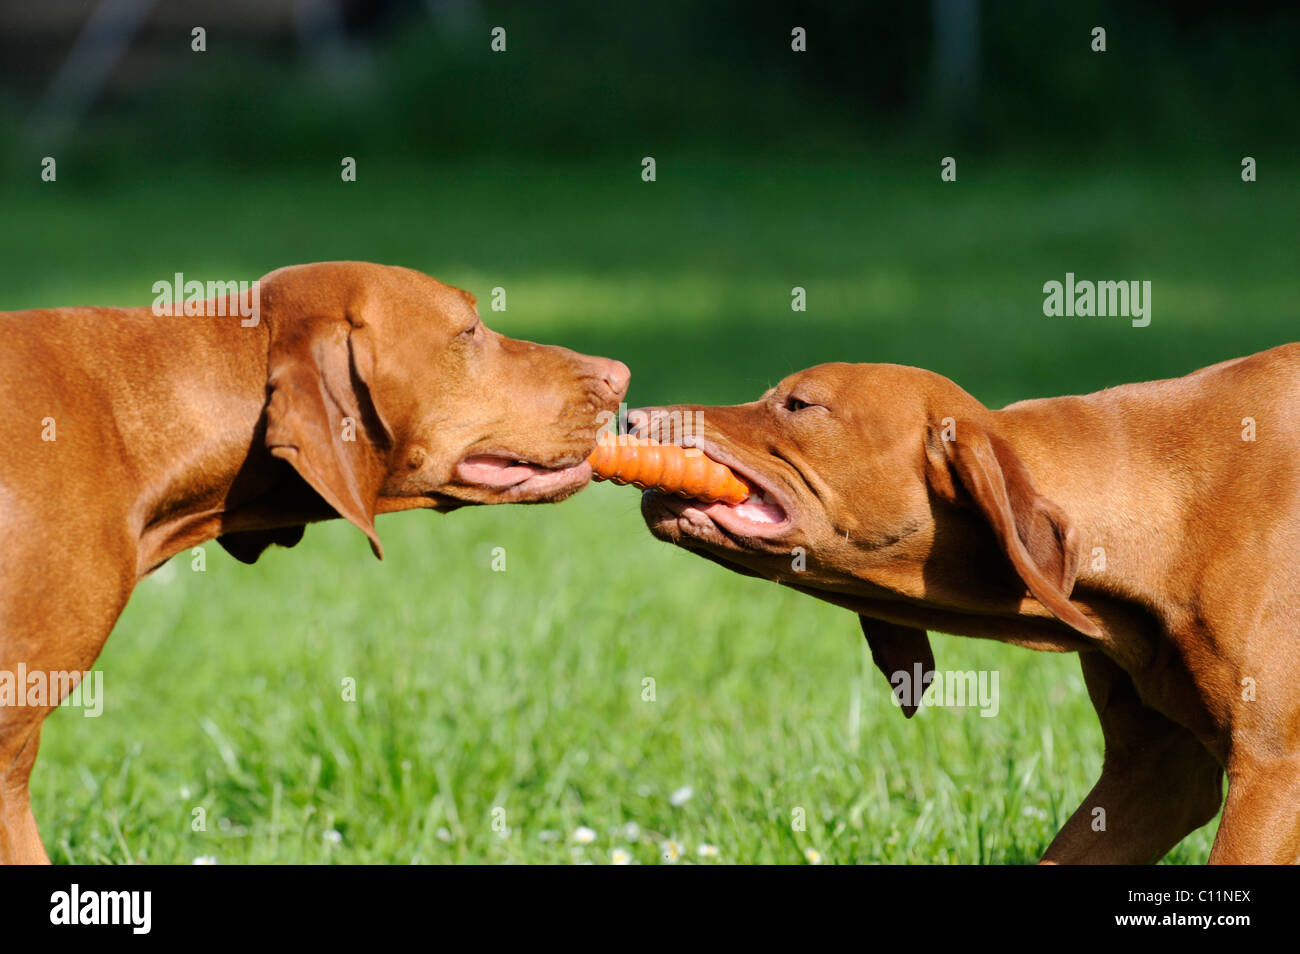 Two Magyar Viszla dogs pulling on a toy - Stock Image